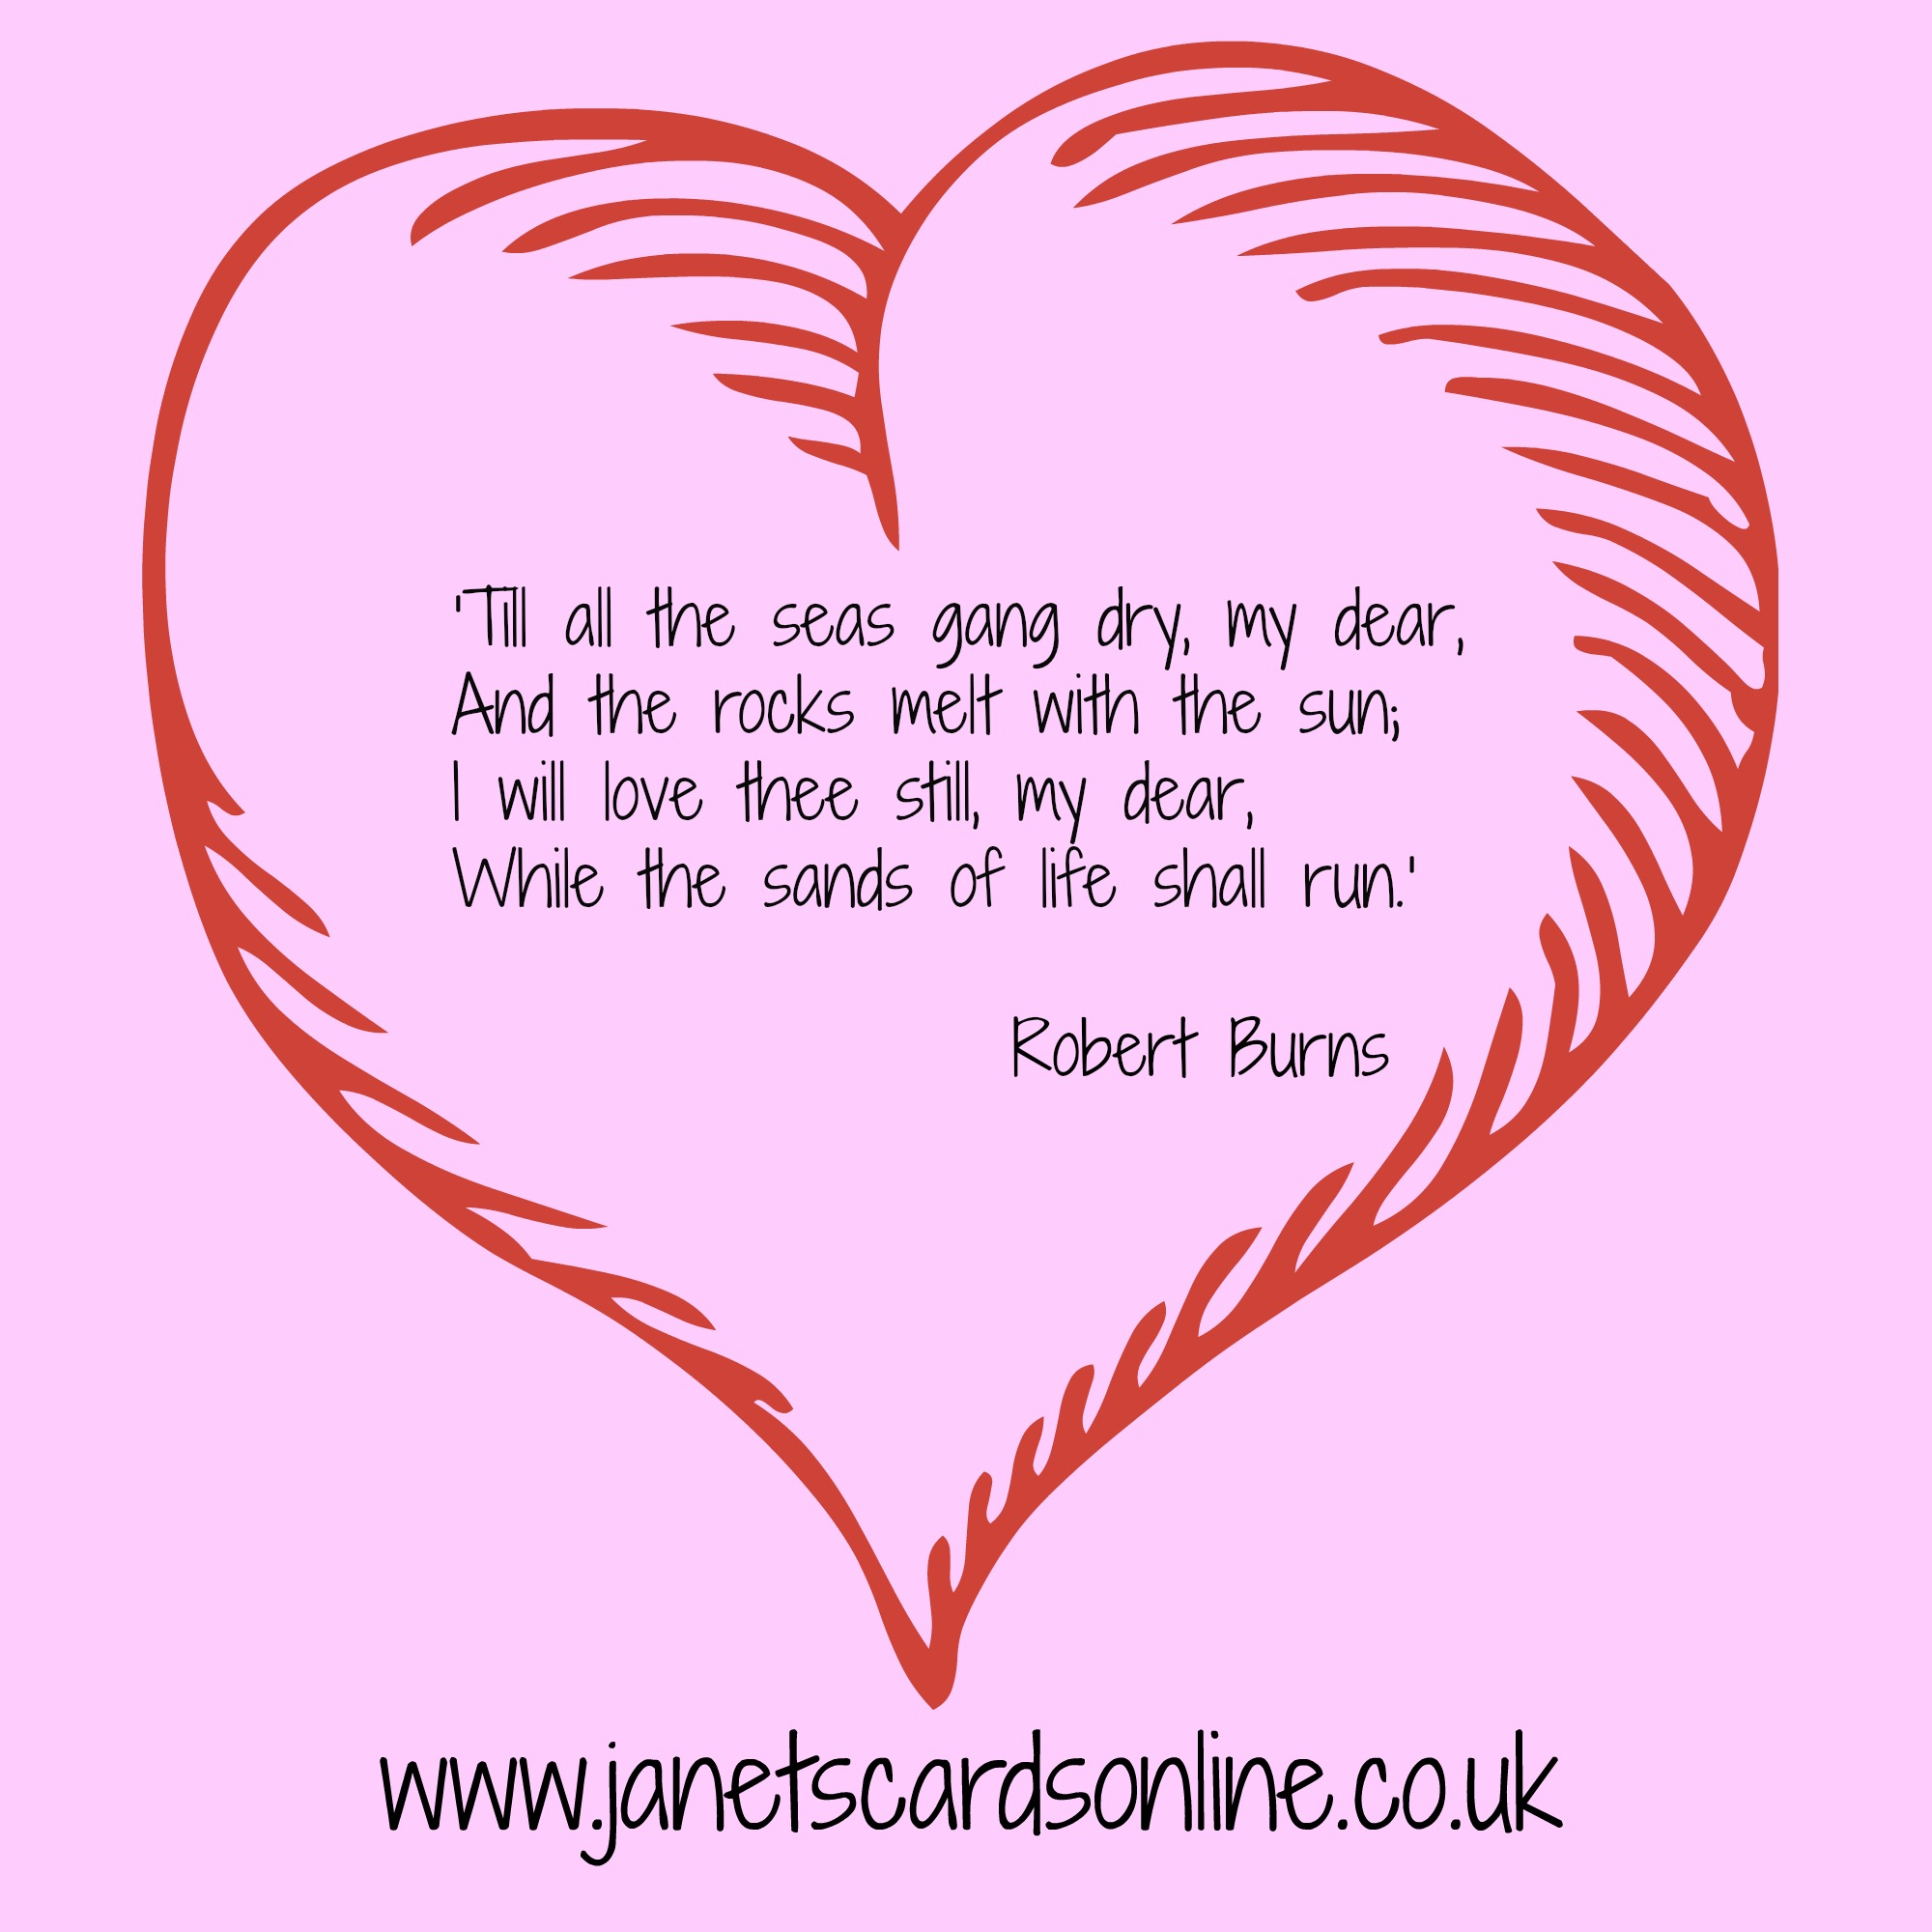 Robert Burns Love like a red red rose valentines poem quote